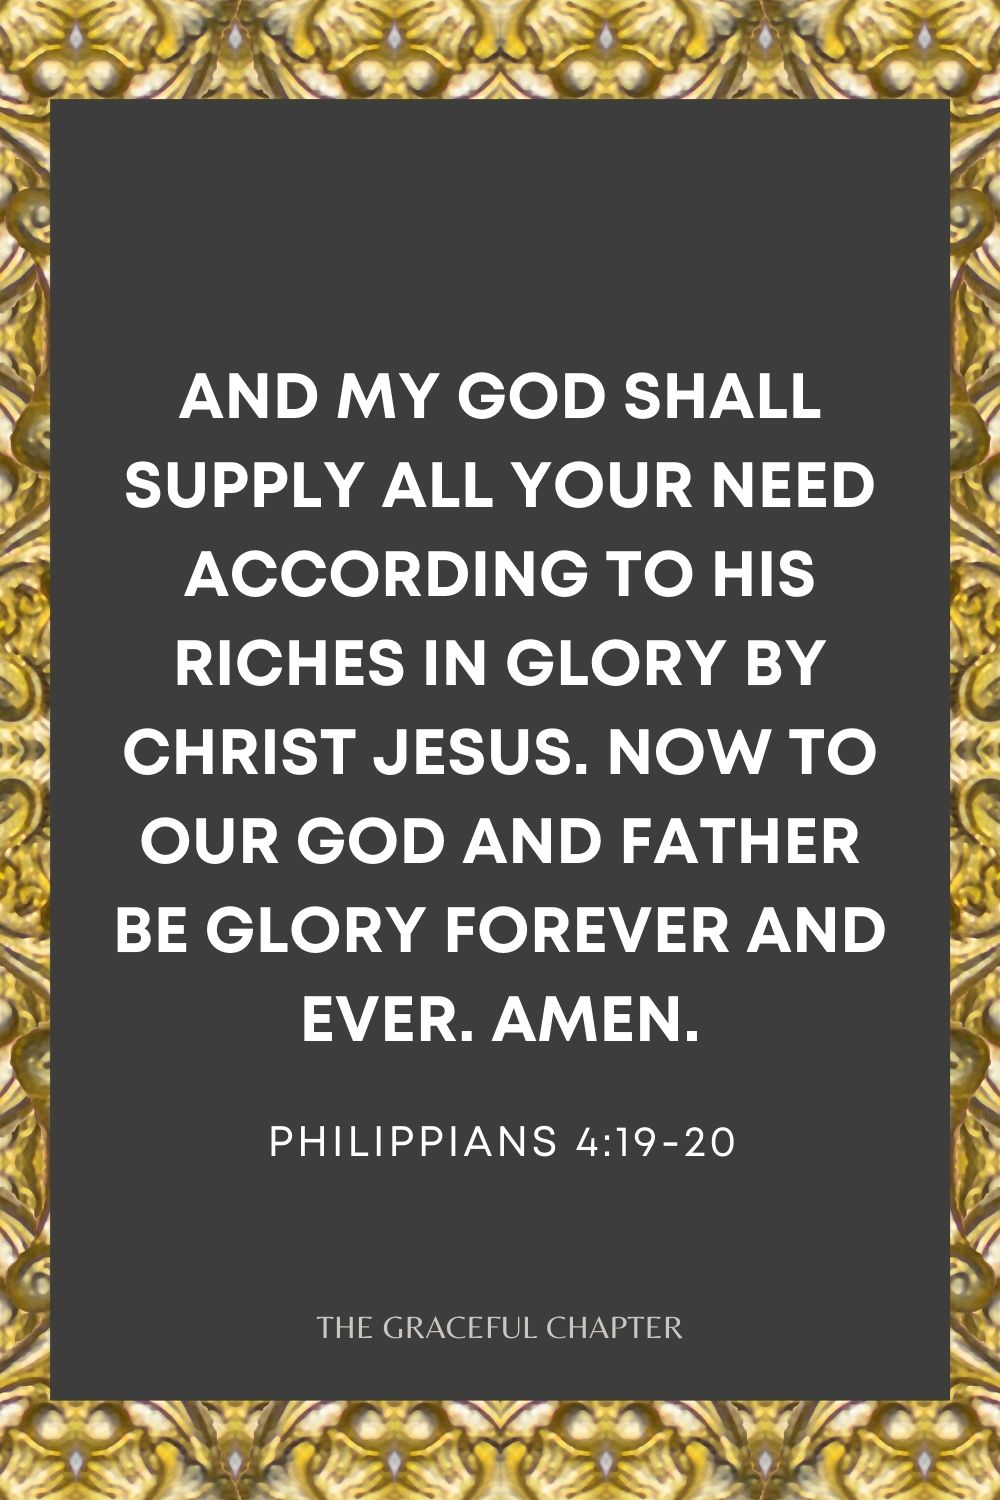 And my God shall supply all your need according to His riches in glory by Christ Jesus. Now to our God and Father be glory forever and ever. Amen. Philippians 4:19-20